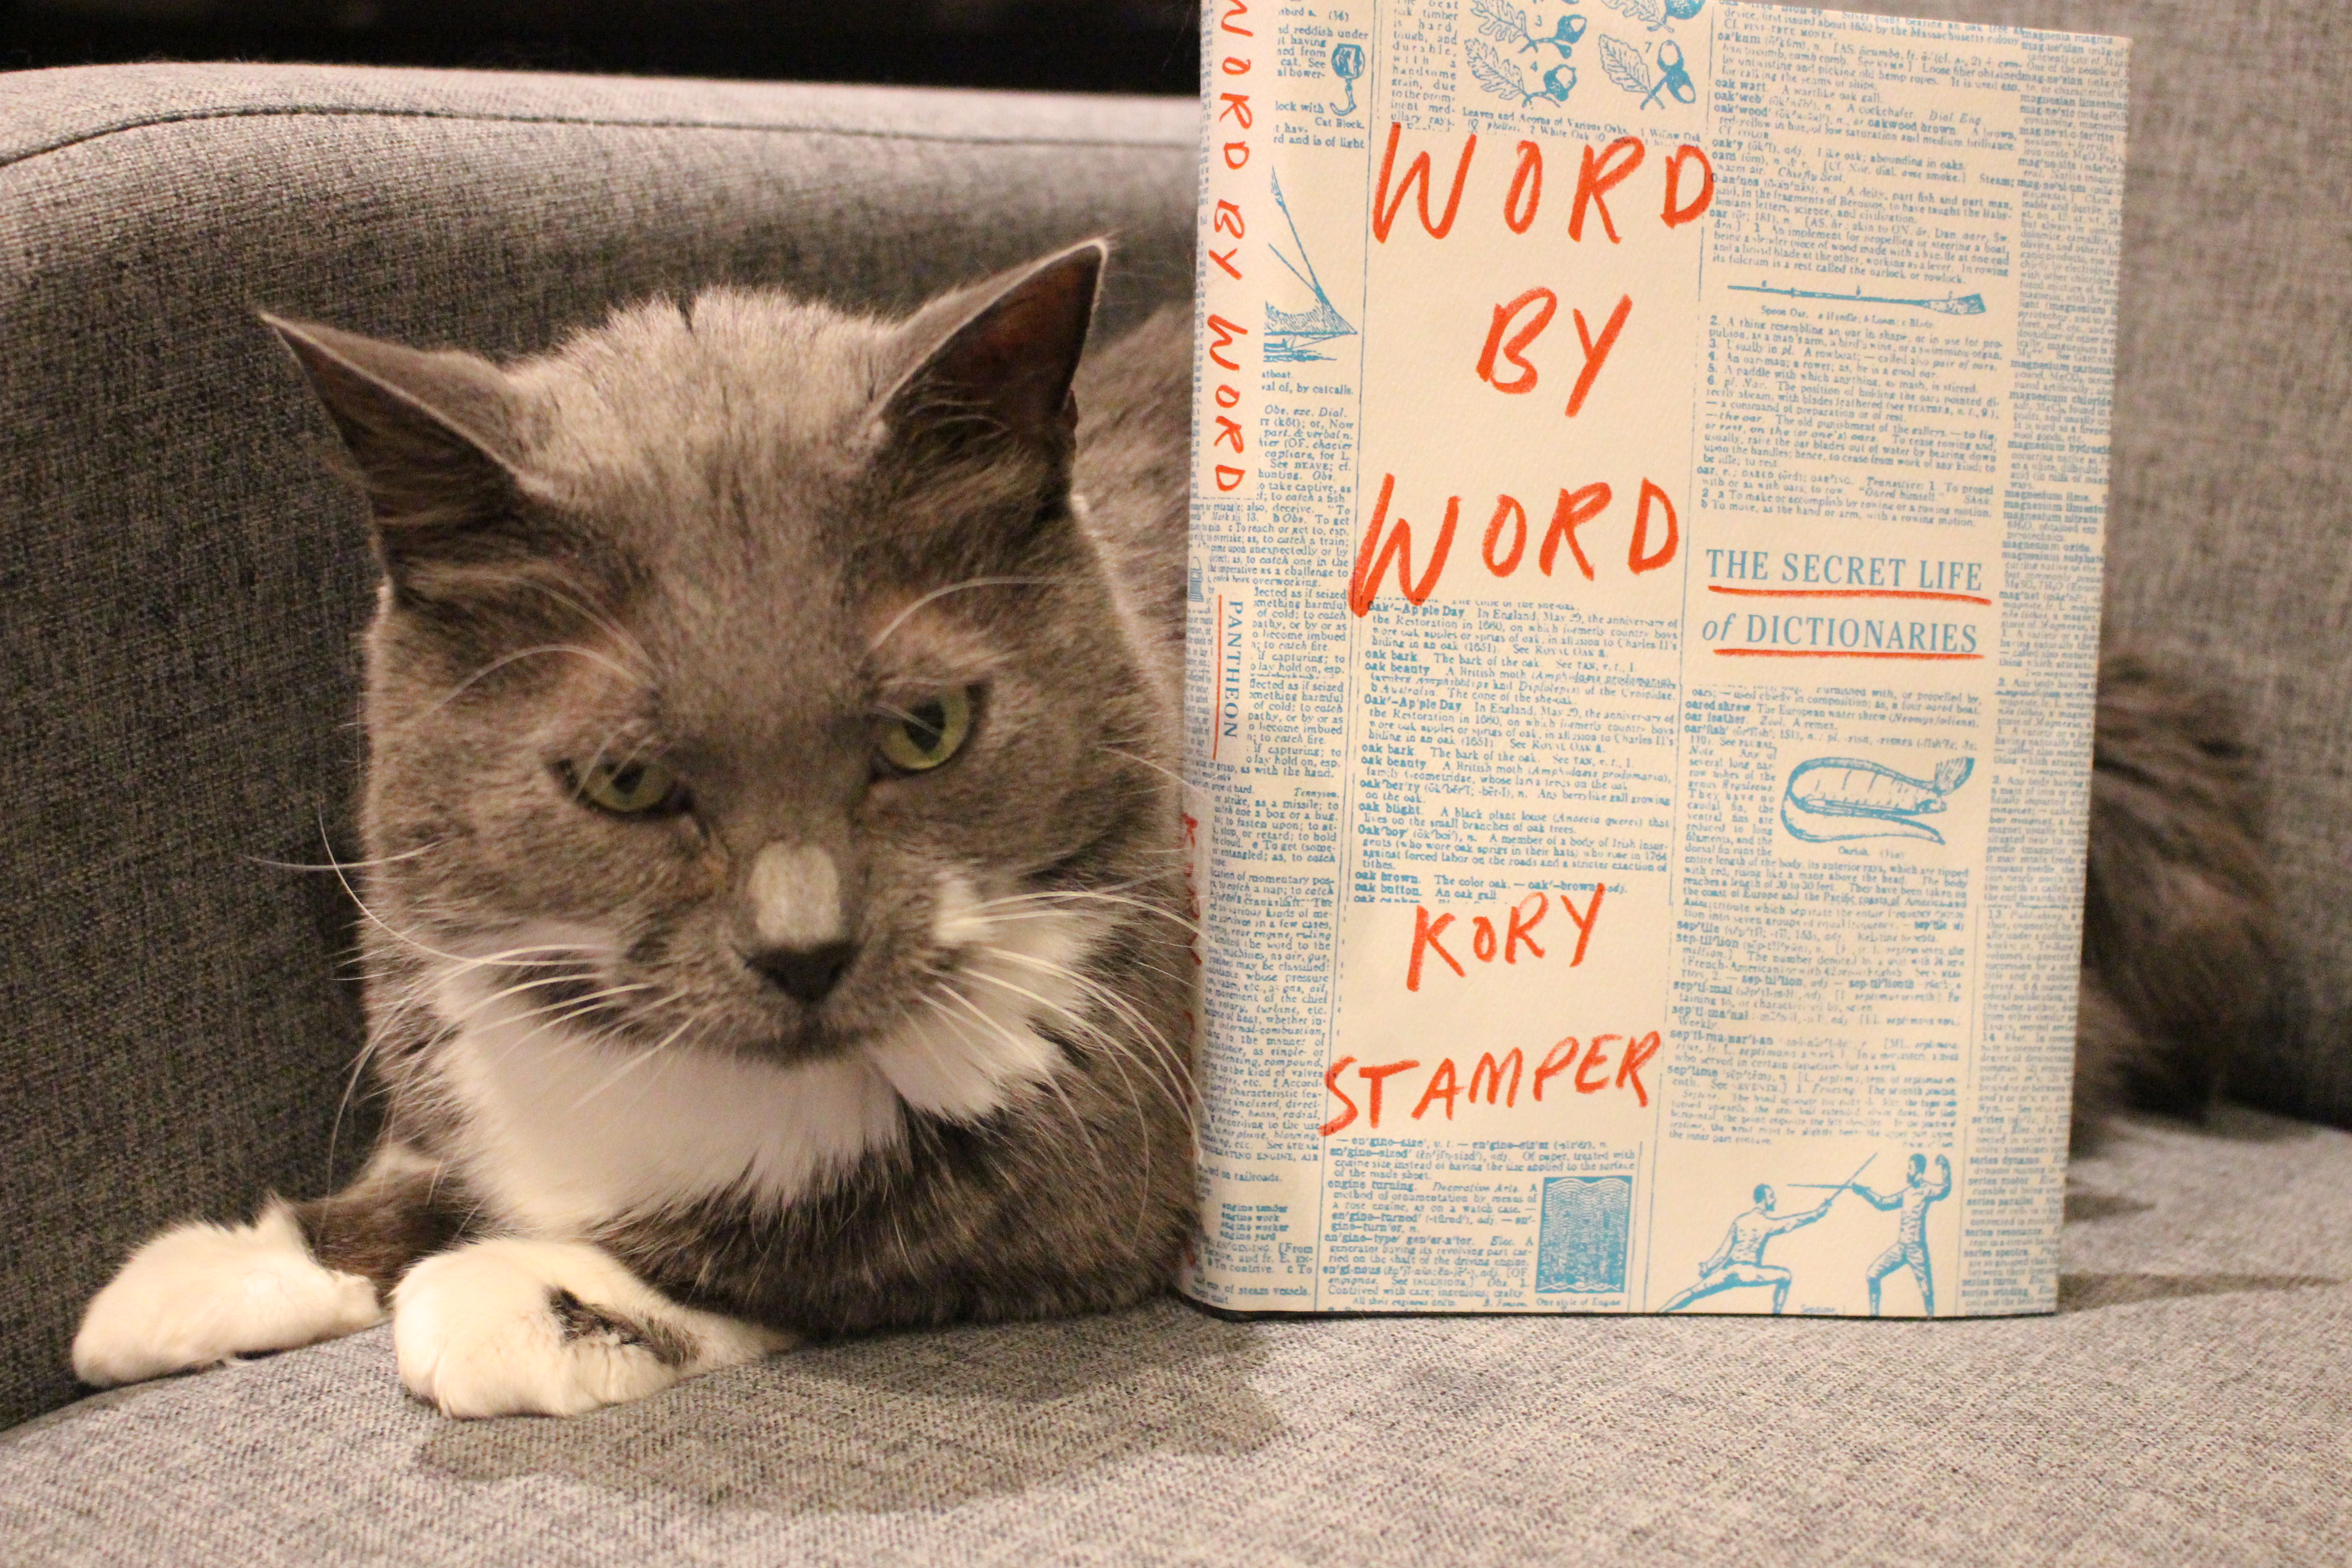 Book Review: Word by Word by Kory Stamper